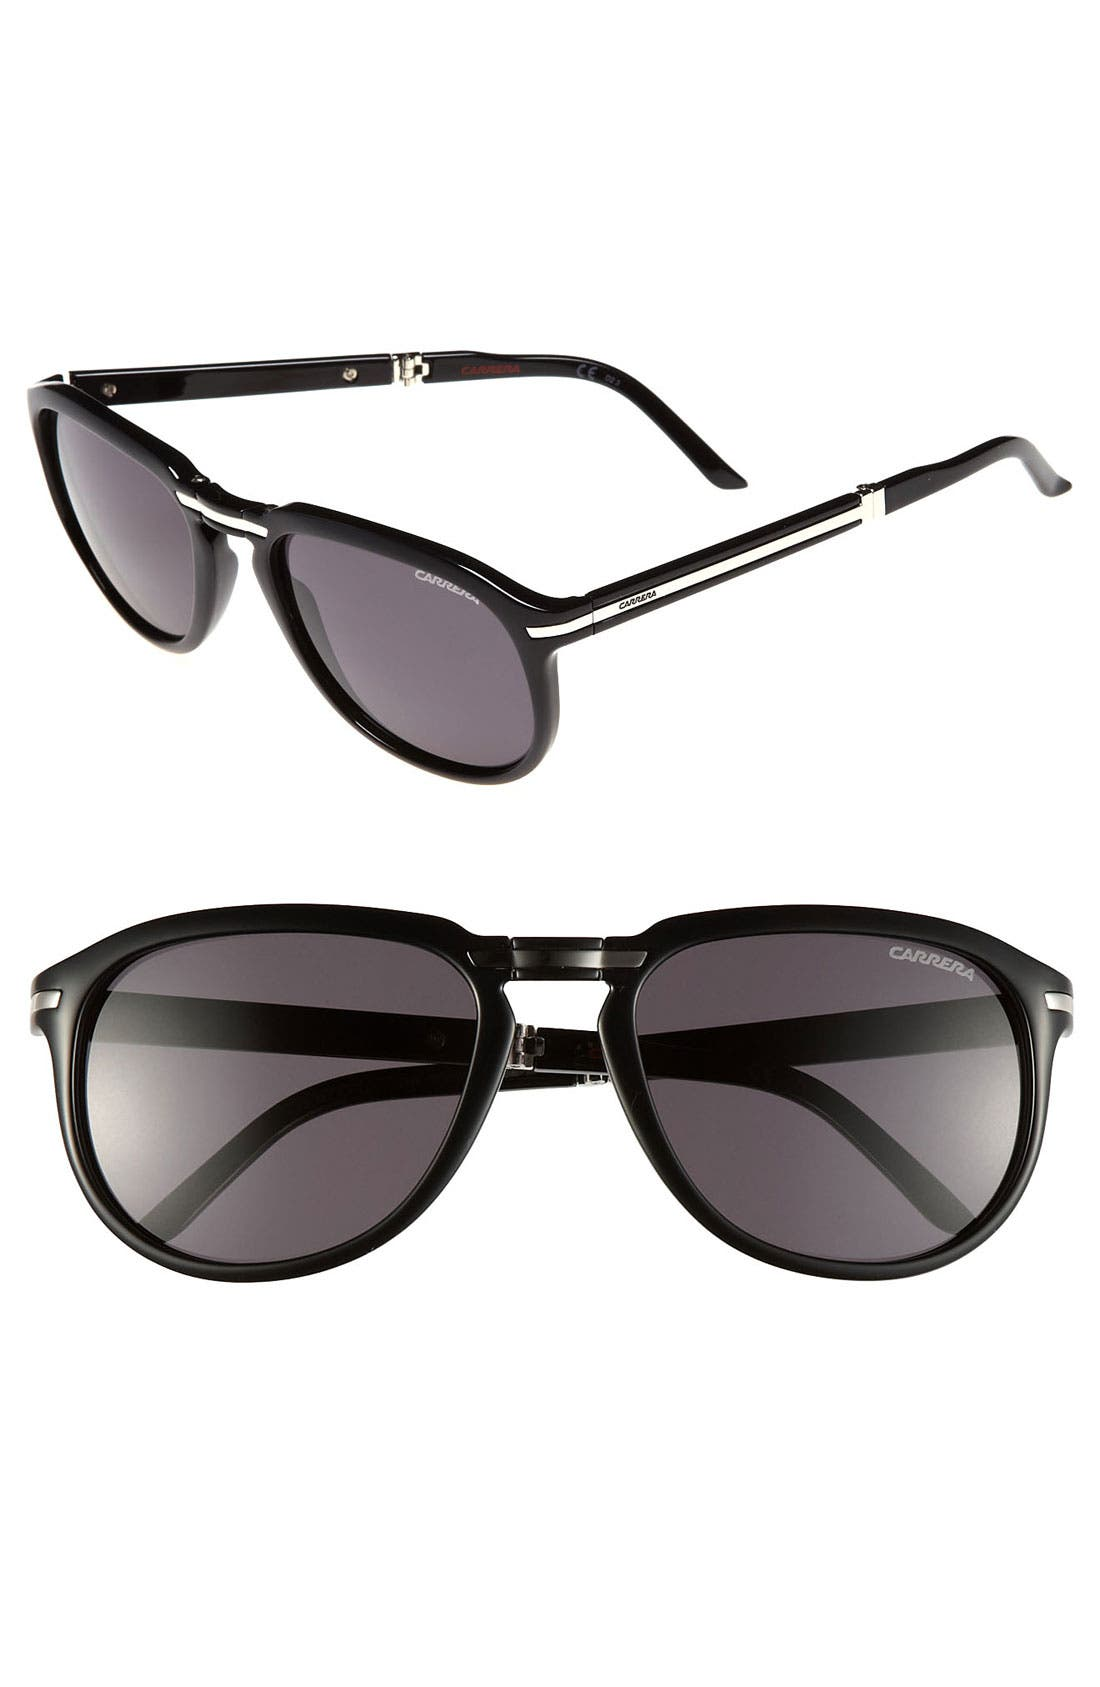 Alternate Image 1 Selected - Carrera Eyewear 'Pocked Flag' 54 mm Foldable Sunglasses